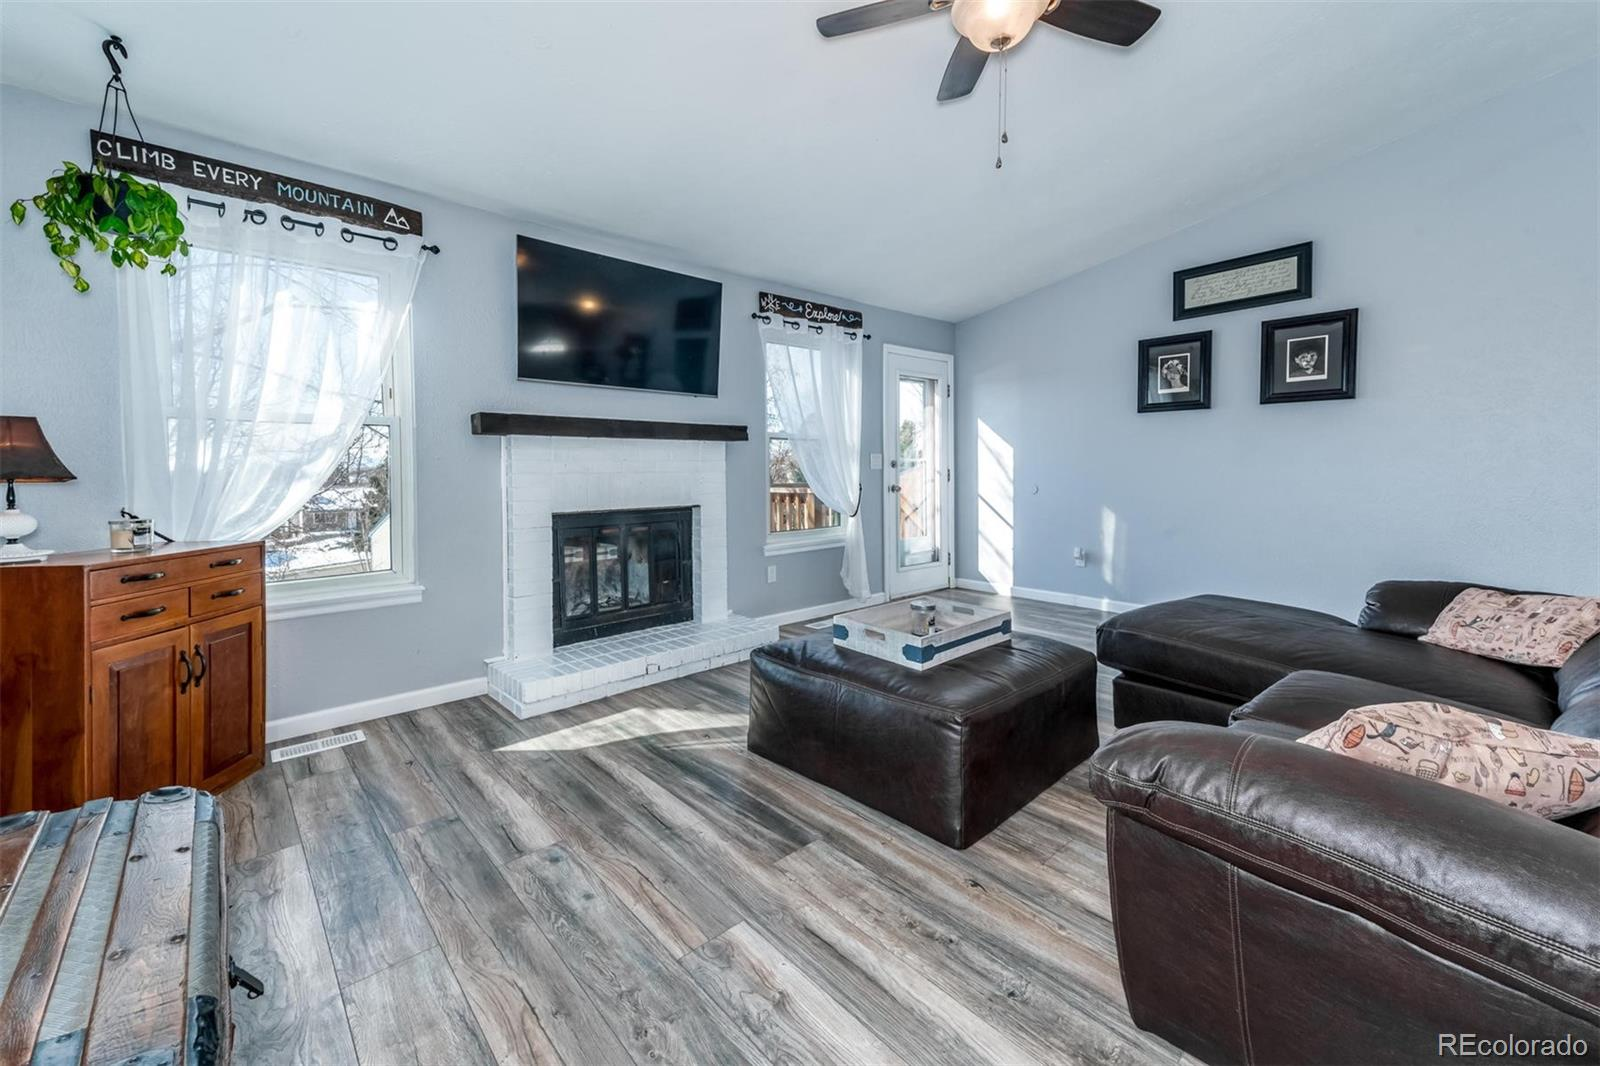 MLS# 5599126 - 12 - 5806 W 74th Place, Arvada, CO 80003